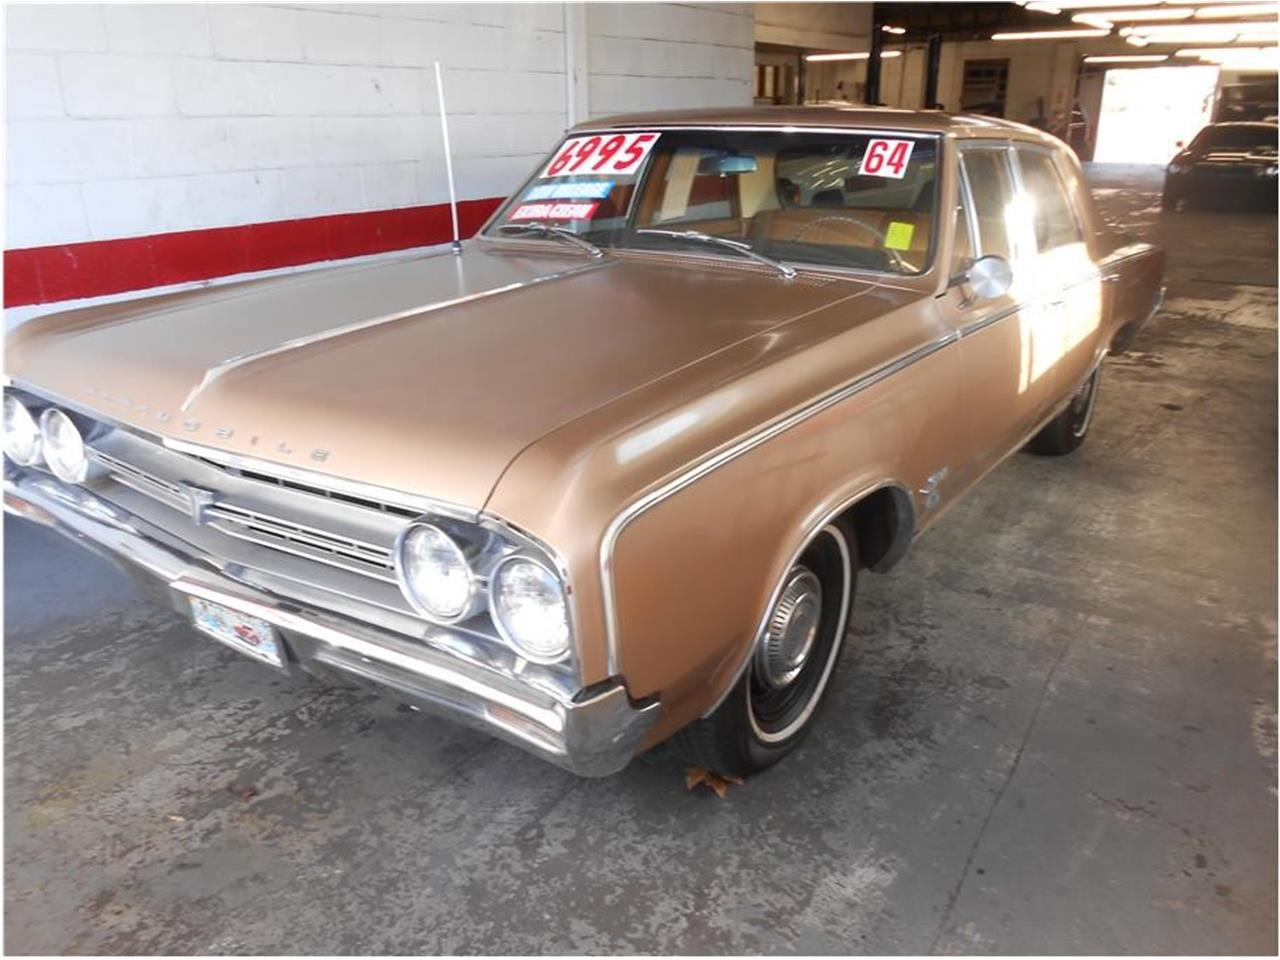 For Sale: 1964 Oldsmobile F85 in Roseville, California